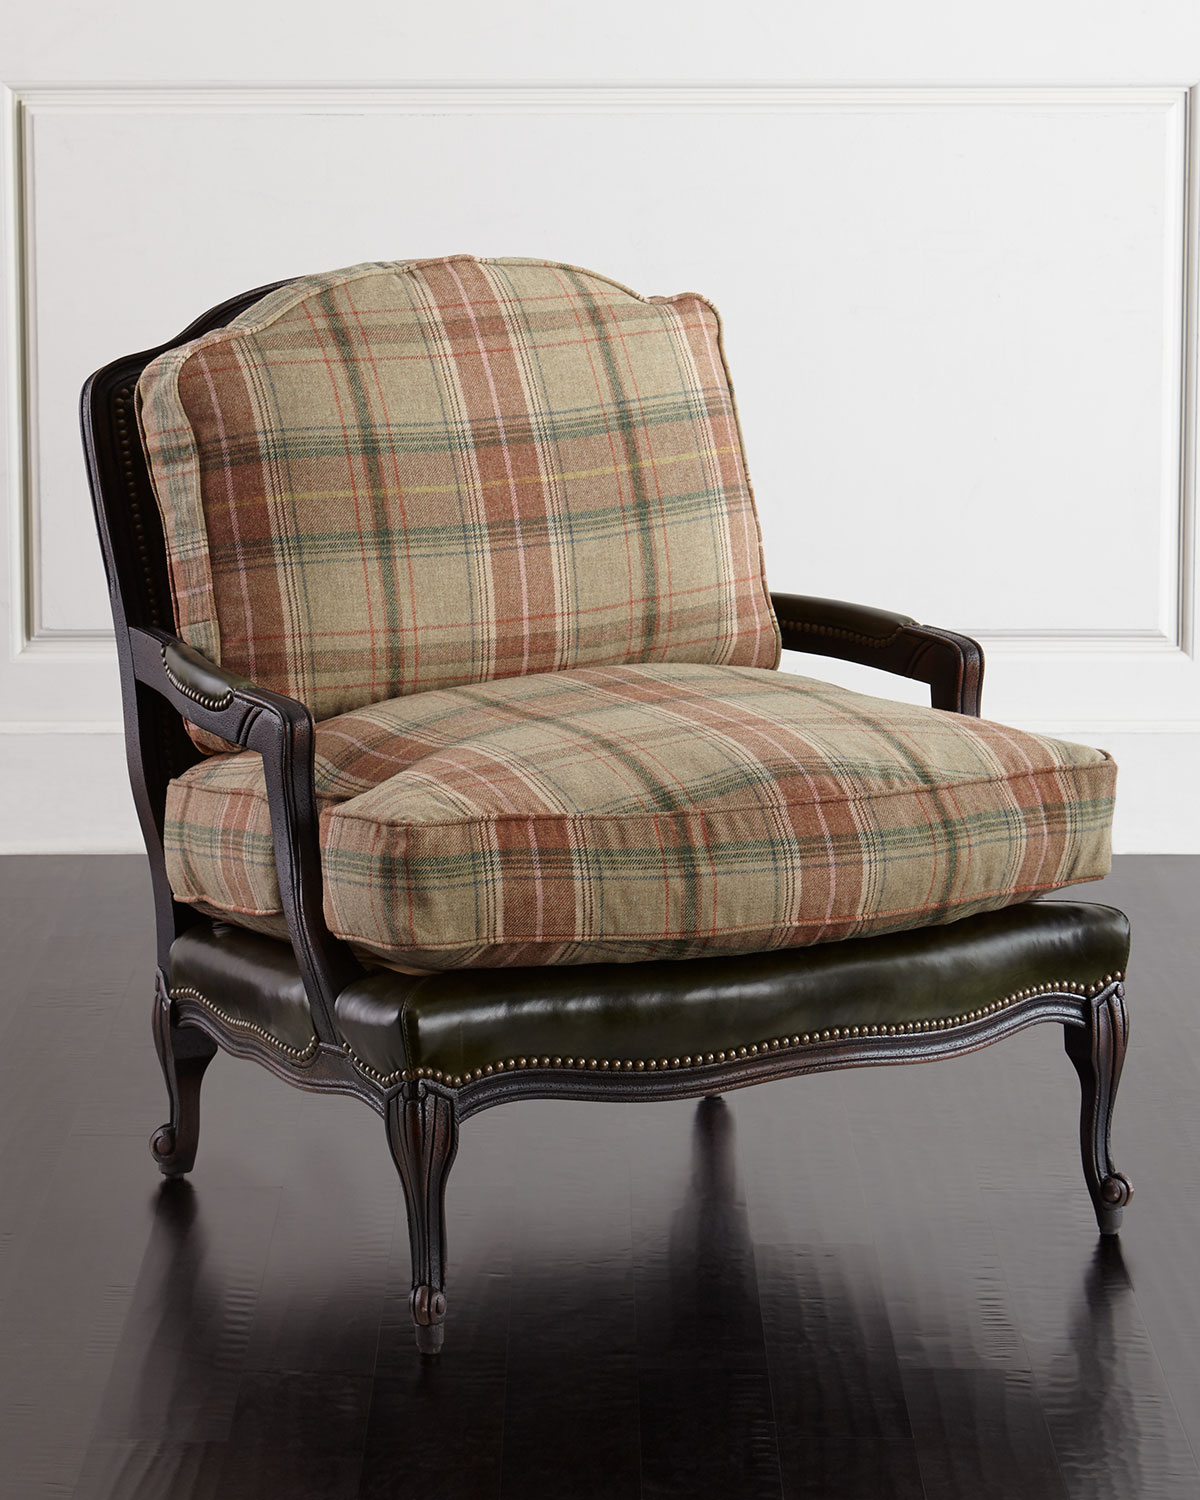 sofas under 100 pounds green vintage sofa old hickory tannery gideon bergere chair neiman marcus